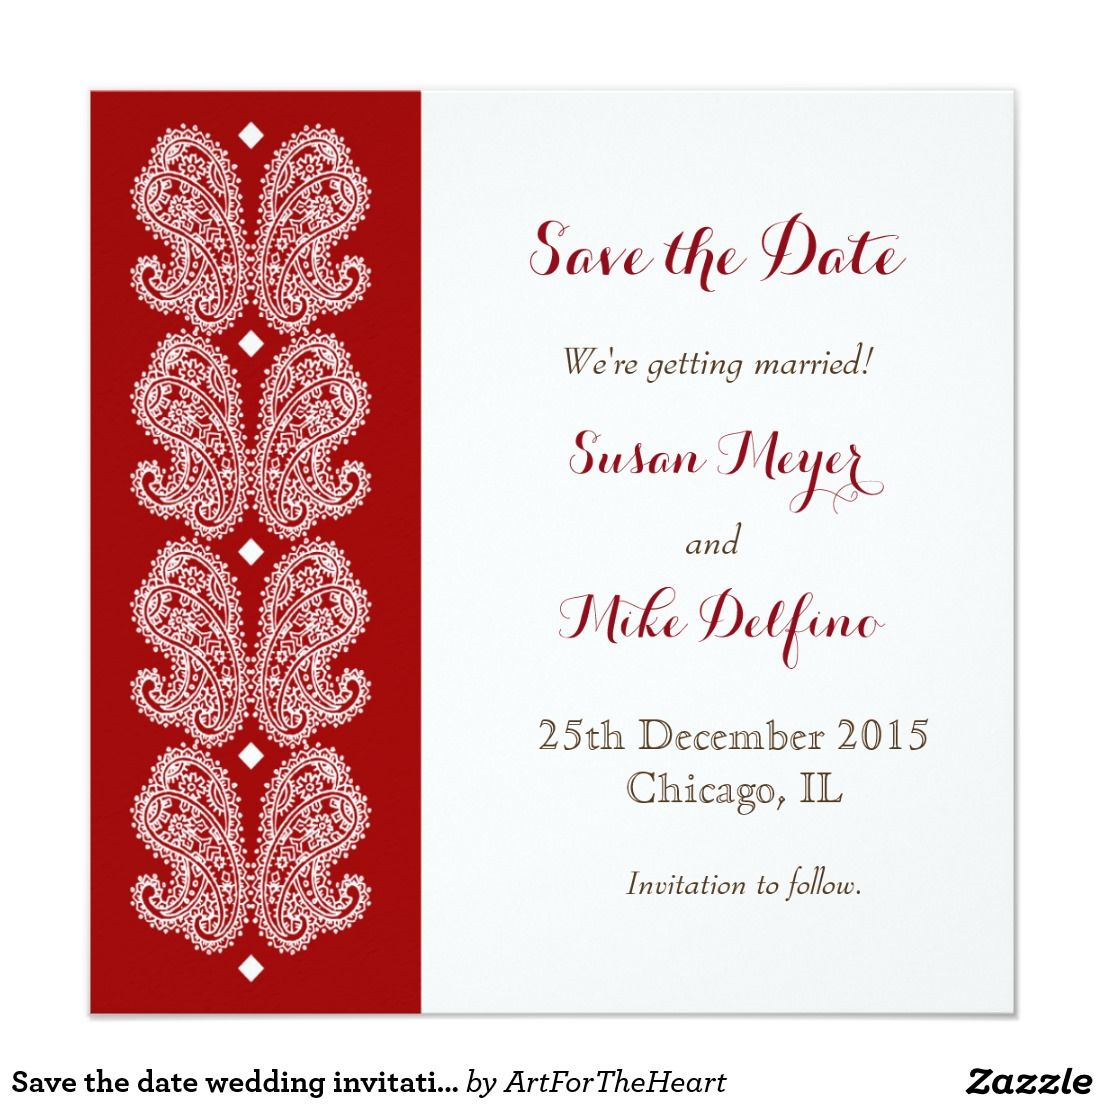 Save the date wedding invitation card paisley red save the date save the date wedding invitation card paisley red stopboris Images